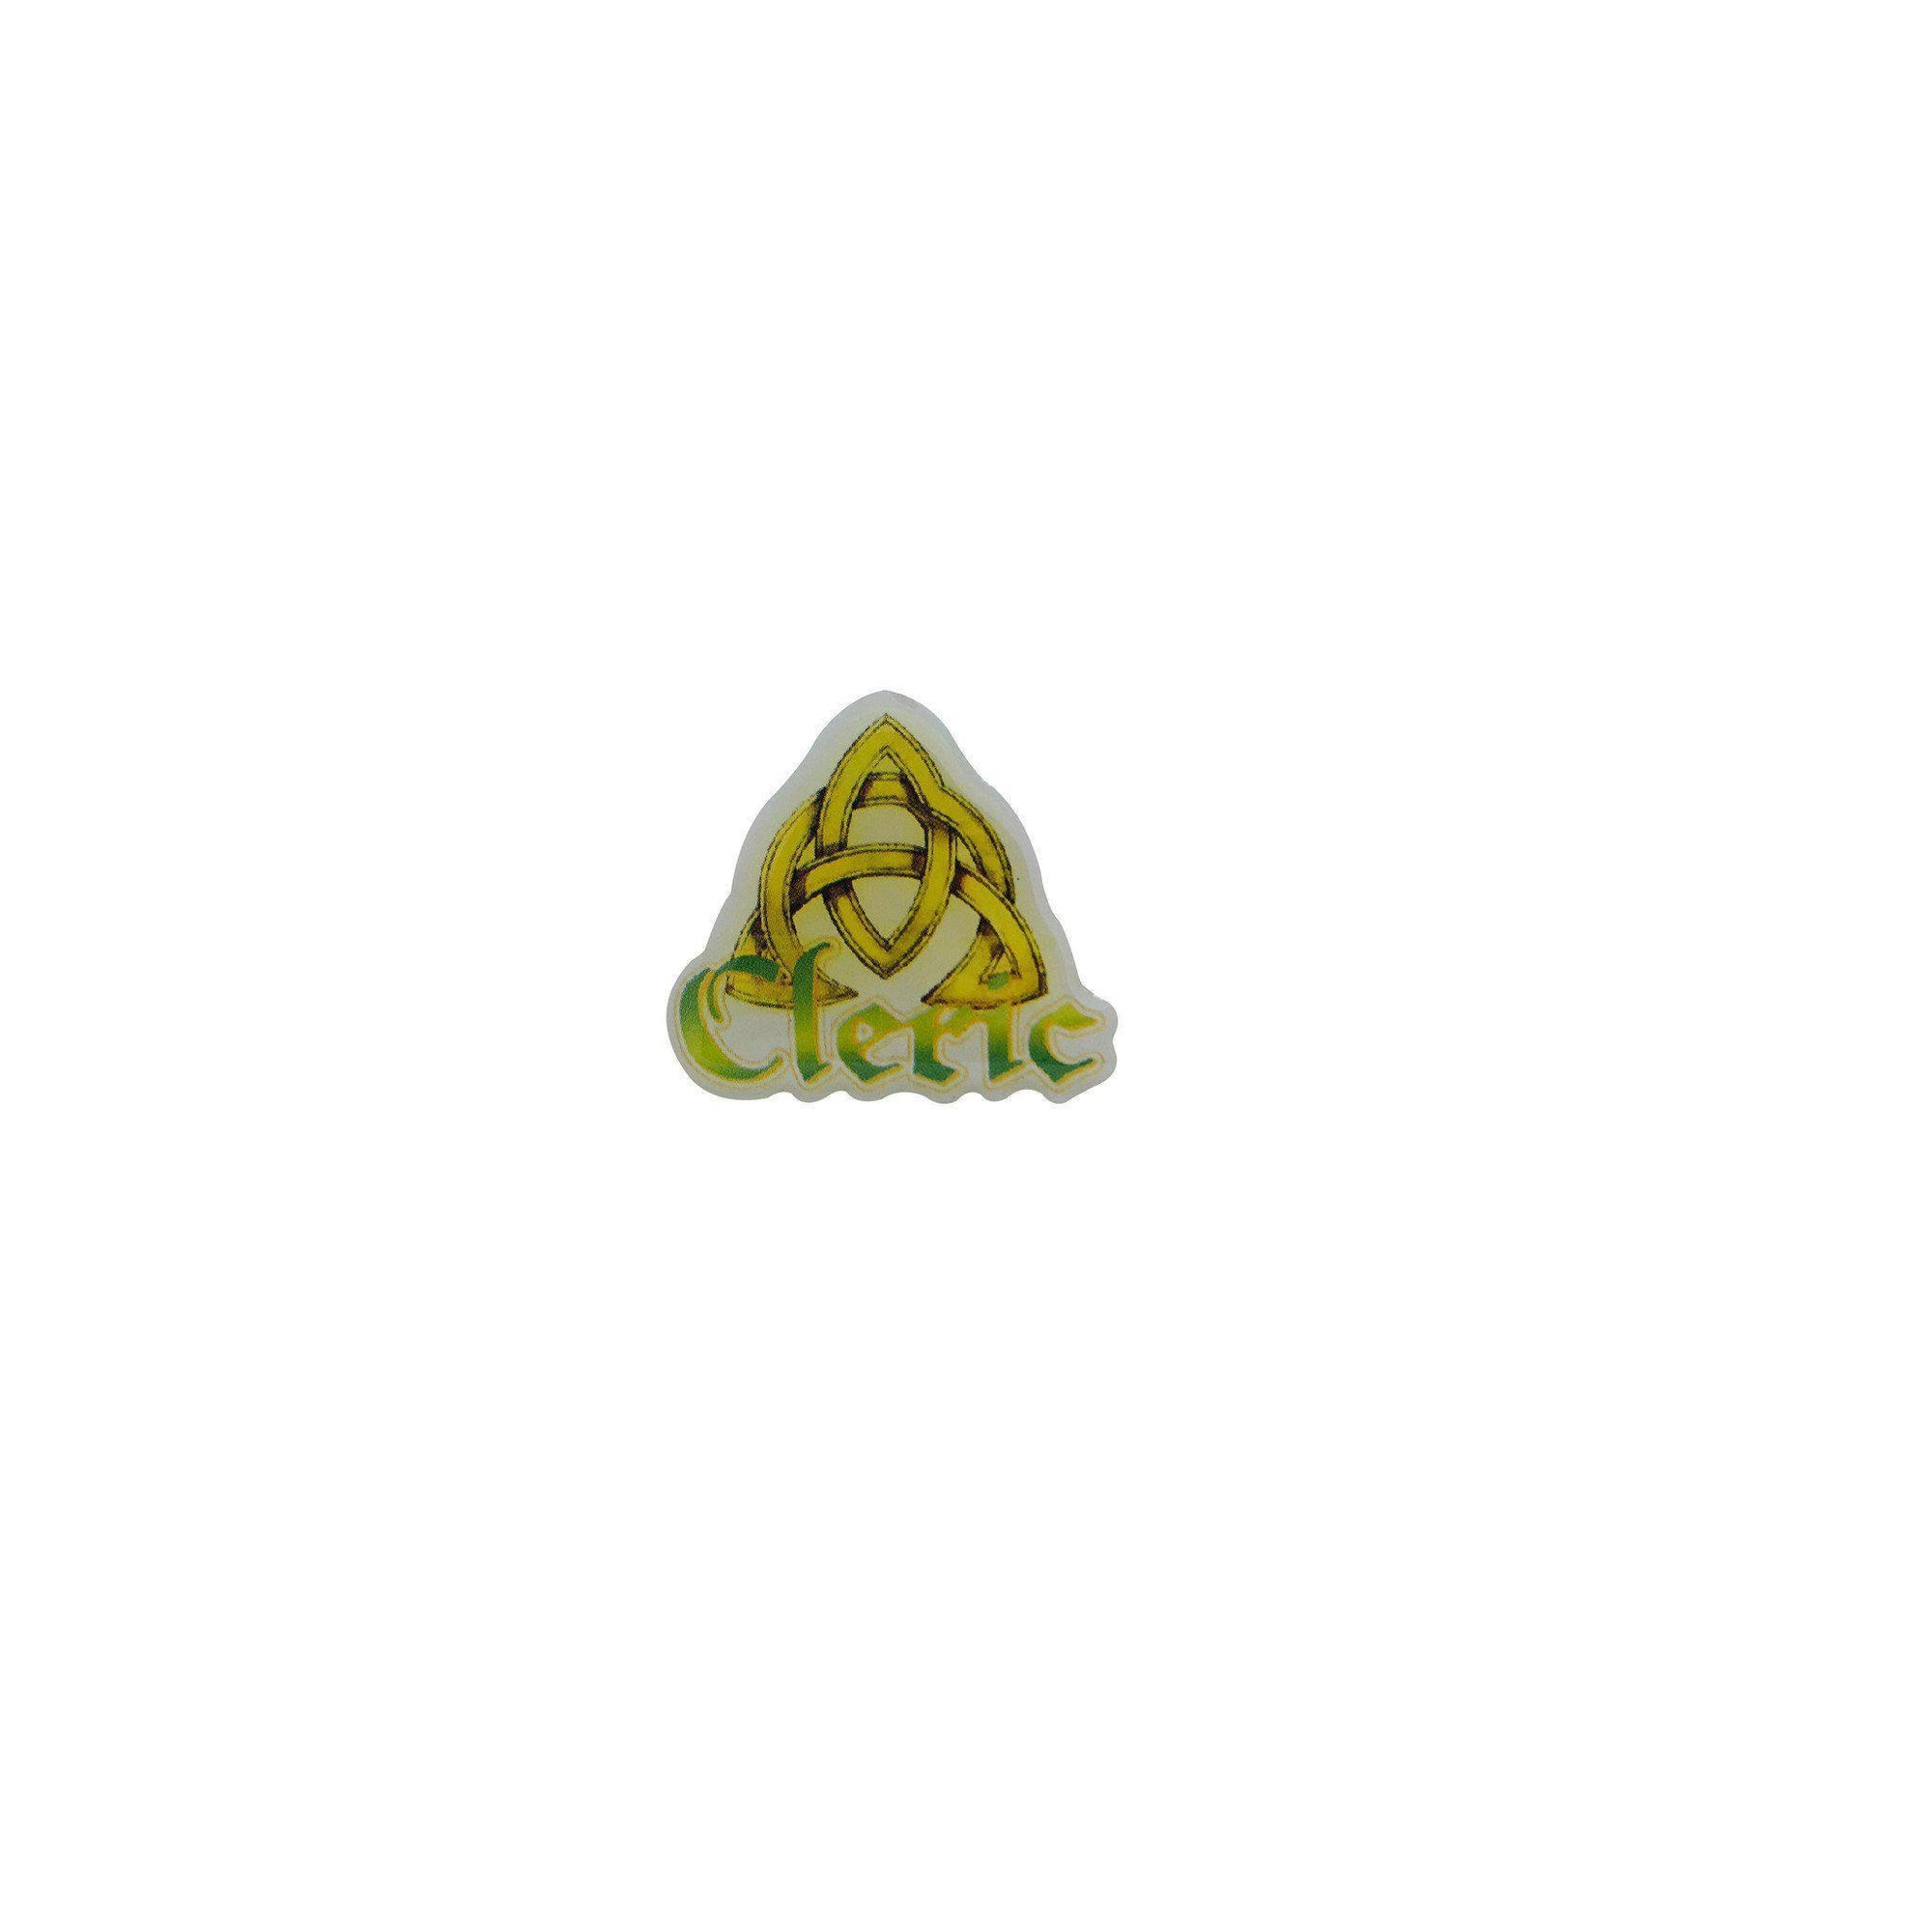 Cleric – Adventure Pin Metal by Norse Foundry Cleric-Pins-Norse Foundry-DND Dice-Polyhedral Dice-D20-Metal Dice-Precision Dice-Luxury Dice-Dungeons and Dragons-D&D-